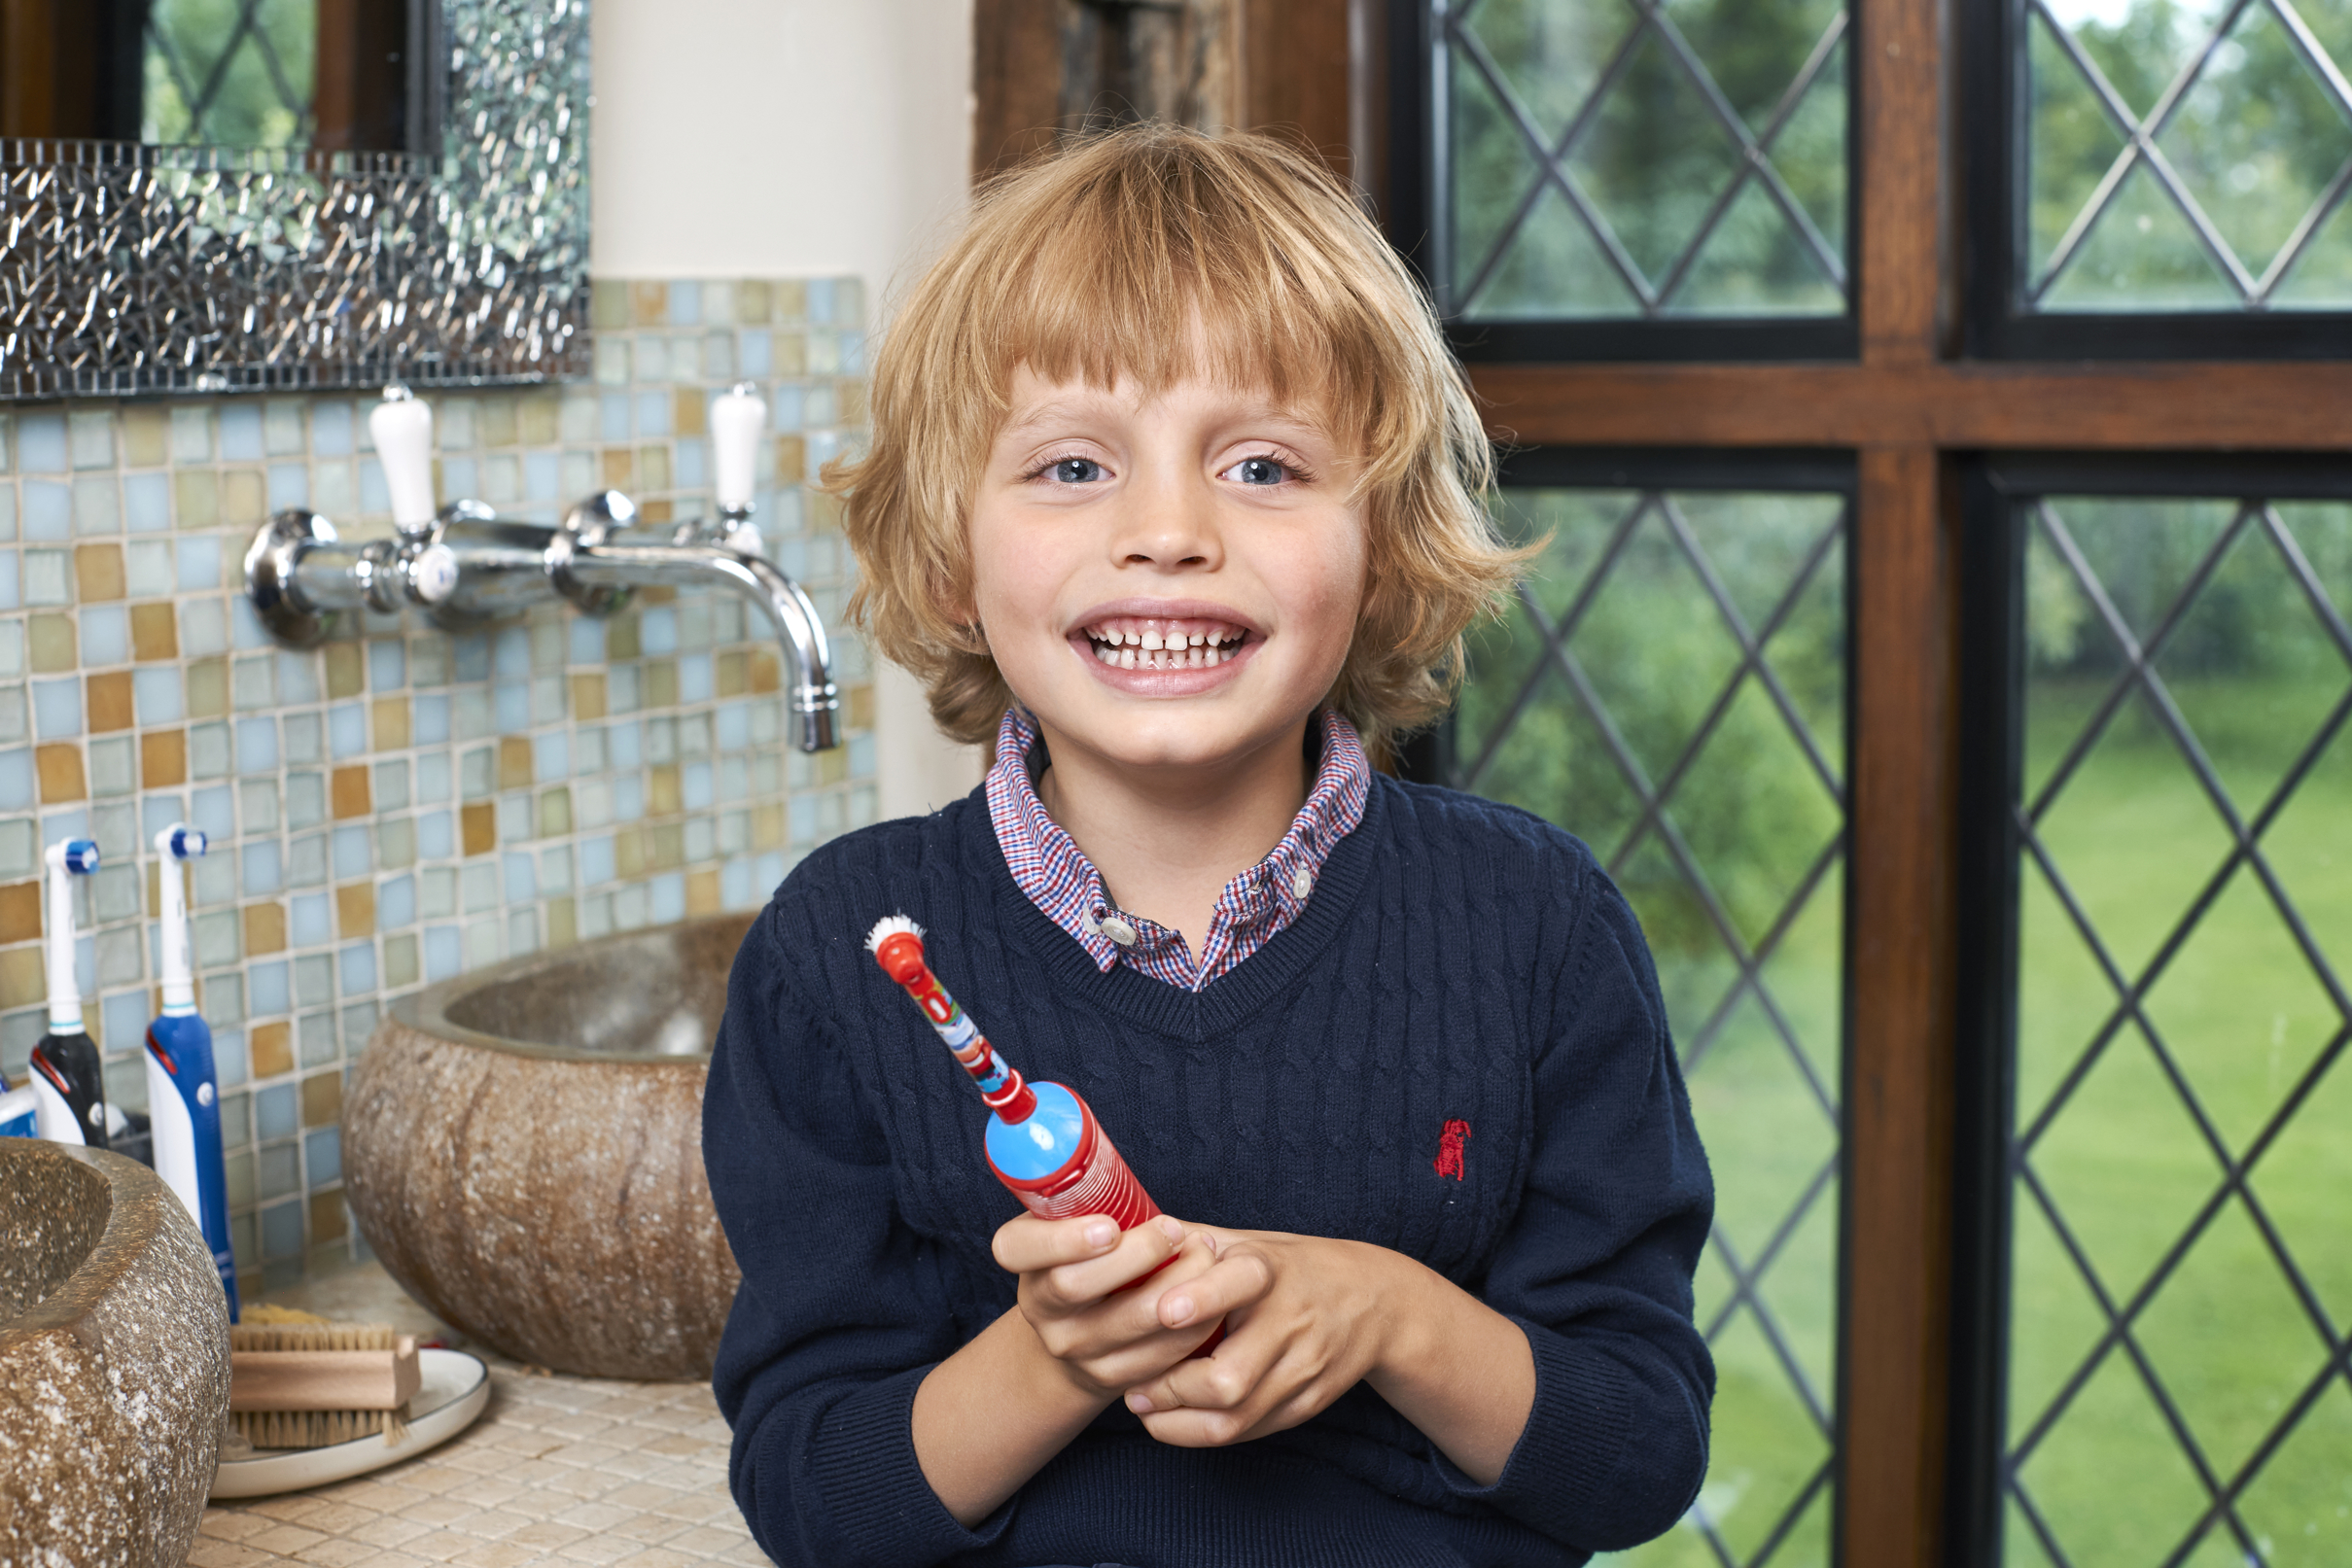 Brushing new toothbrush claims to clean teeth in 6 seconds abc news -  Brush Their Teeth Well Indio With His Favourite Disney Cars Lightening Mcqueen Toothbrush Denplan Pa